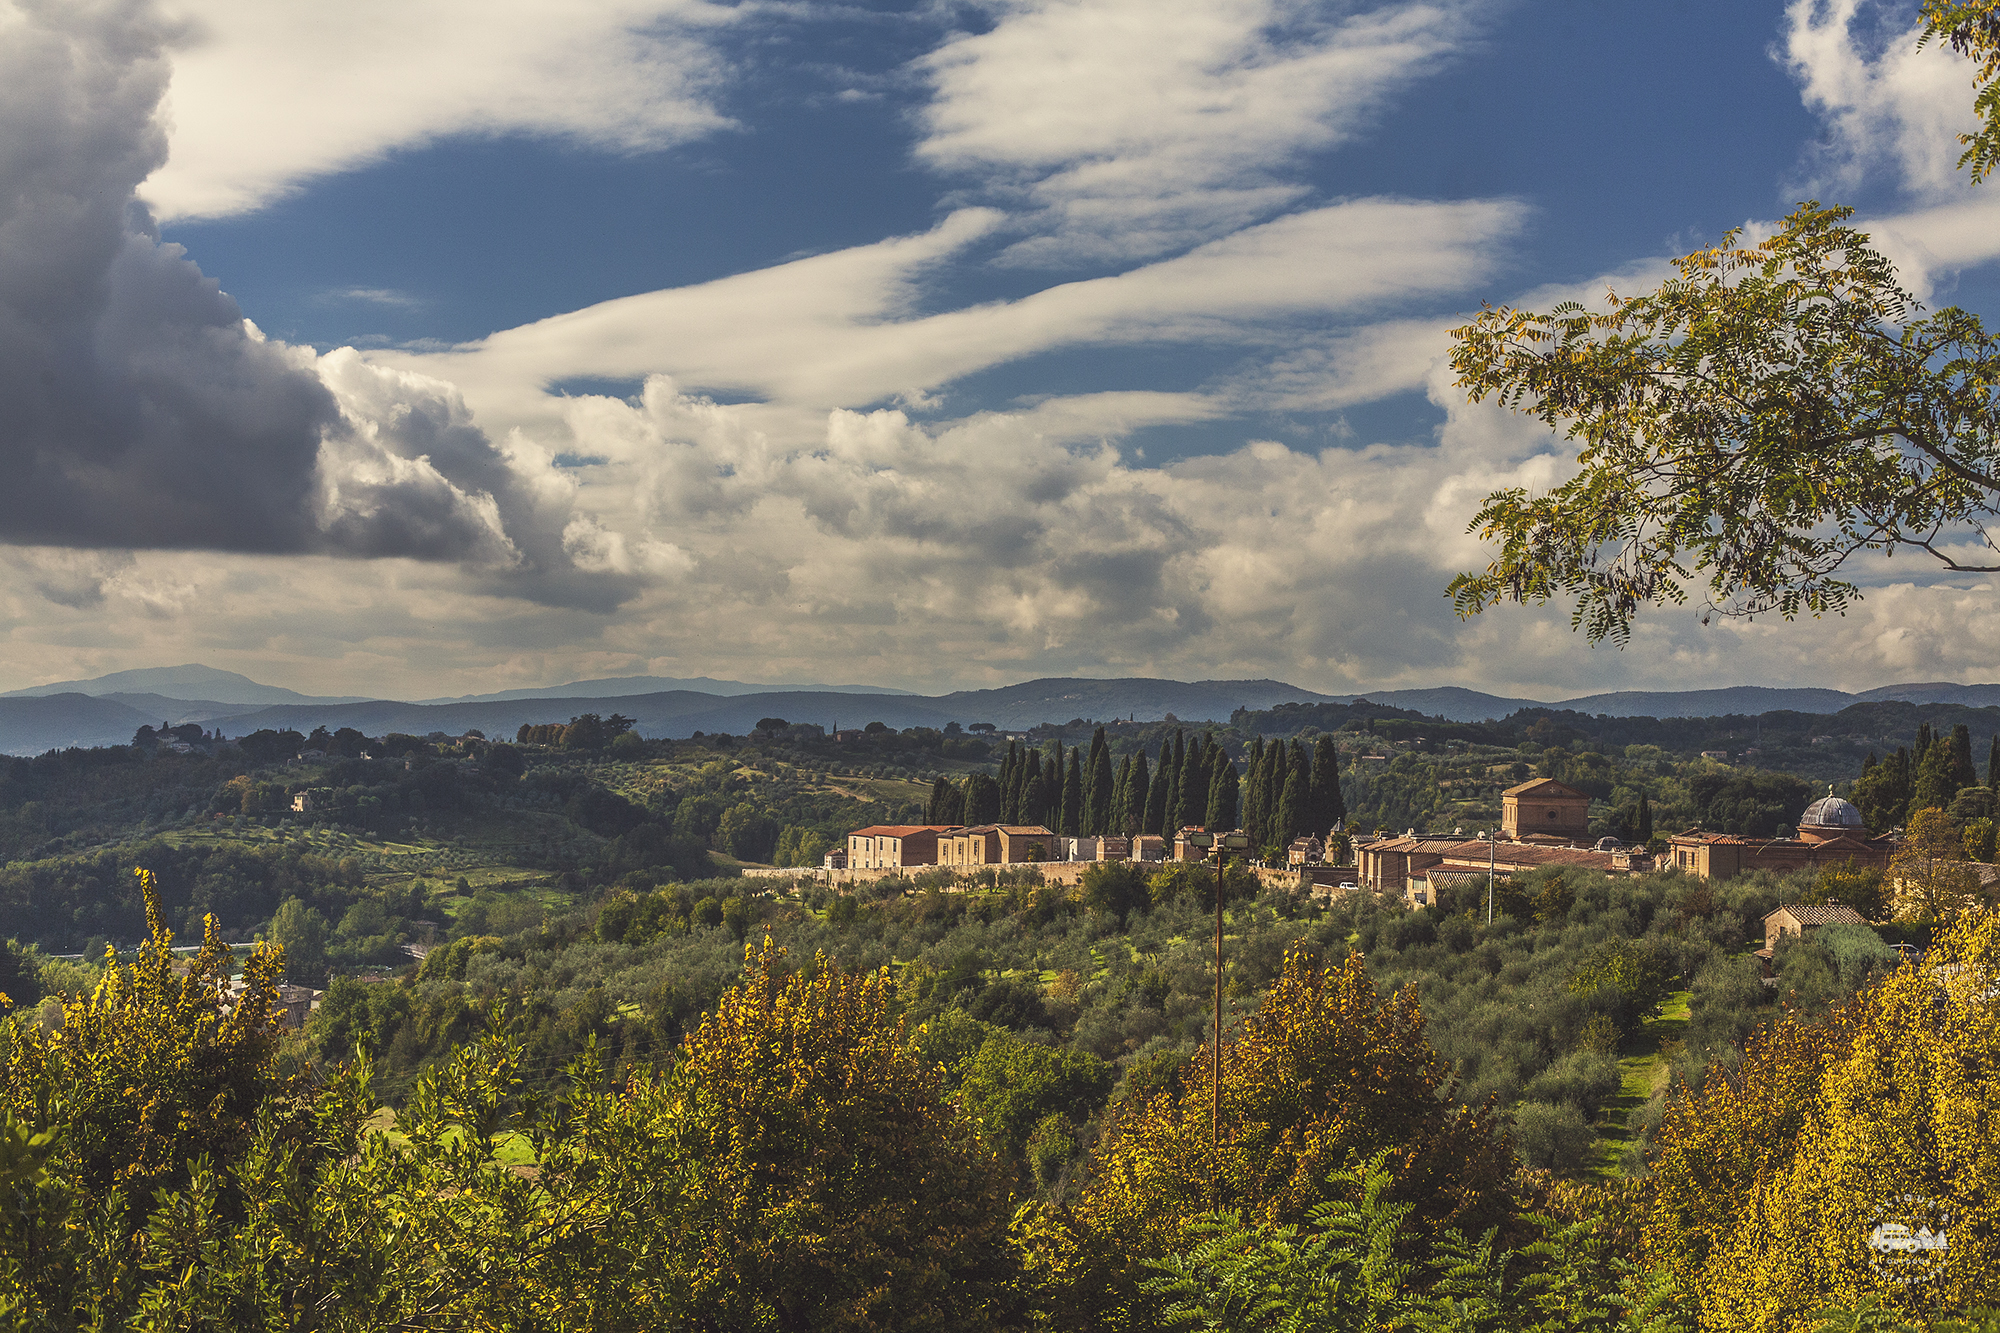 View from Siena [Photo Credits: Alexey - Lelique - Zinovev]